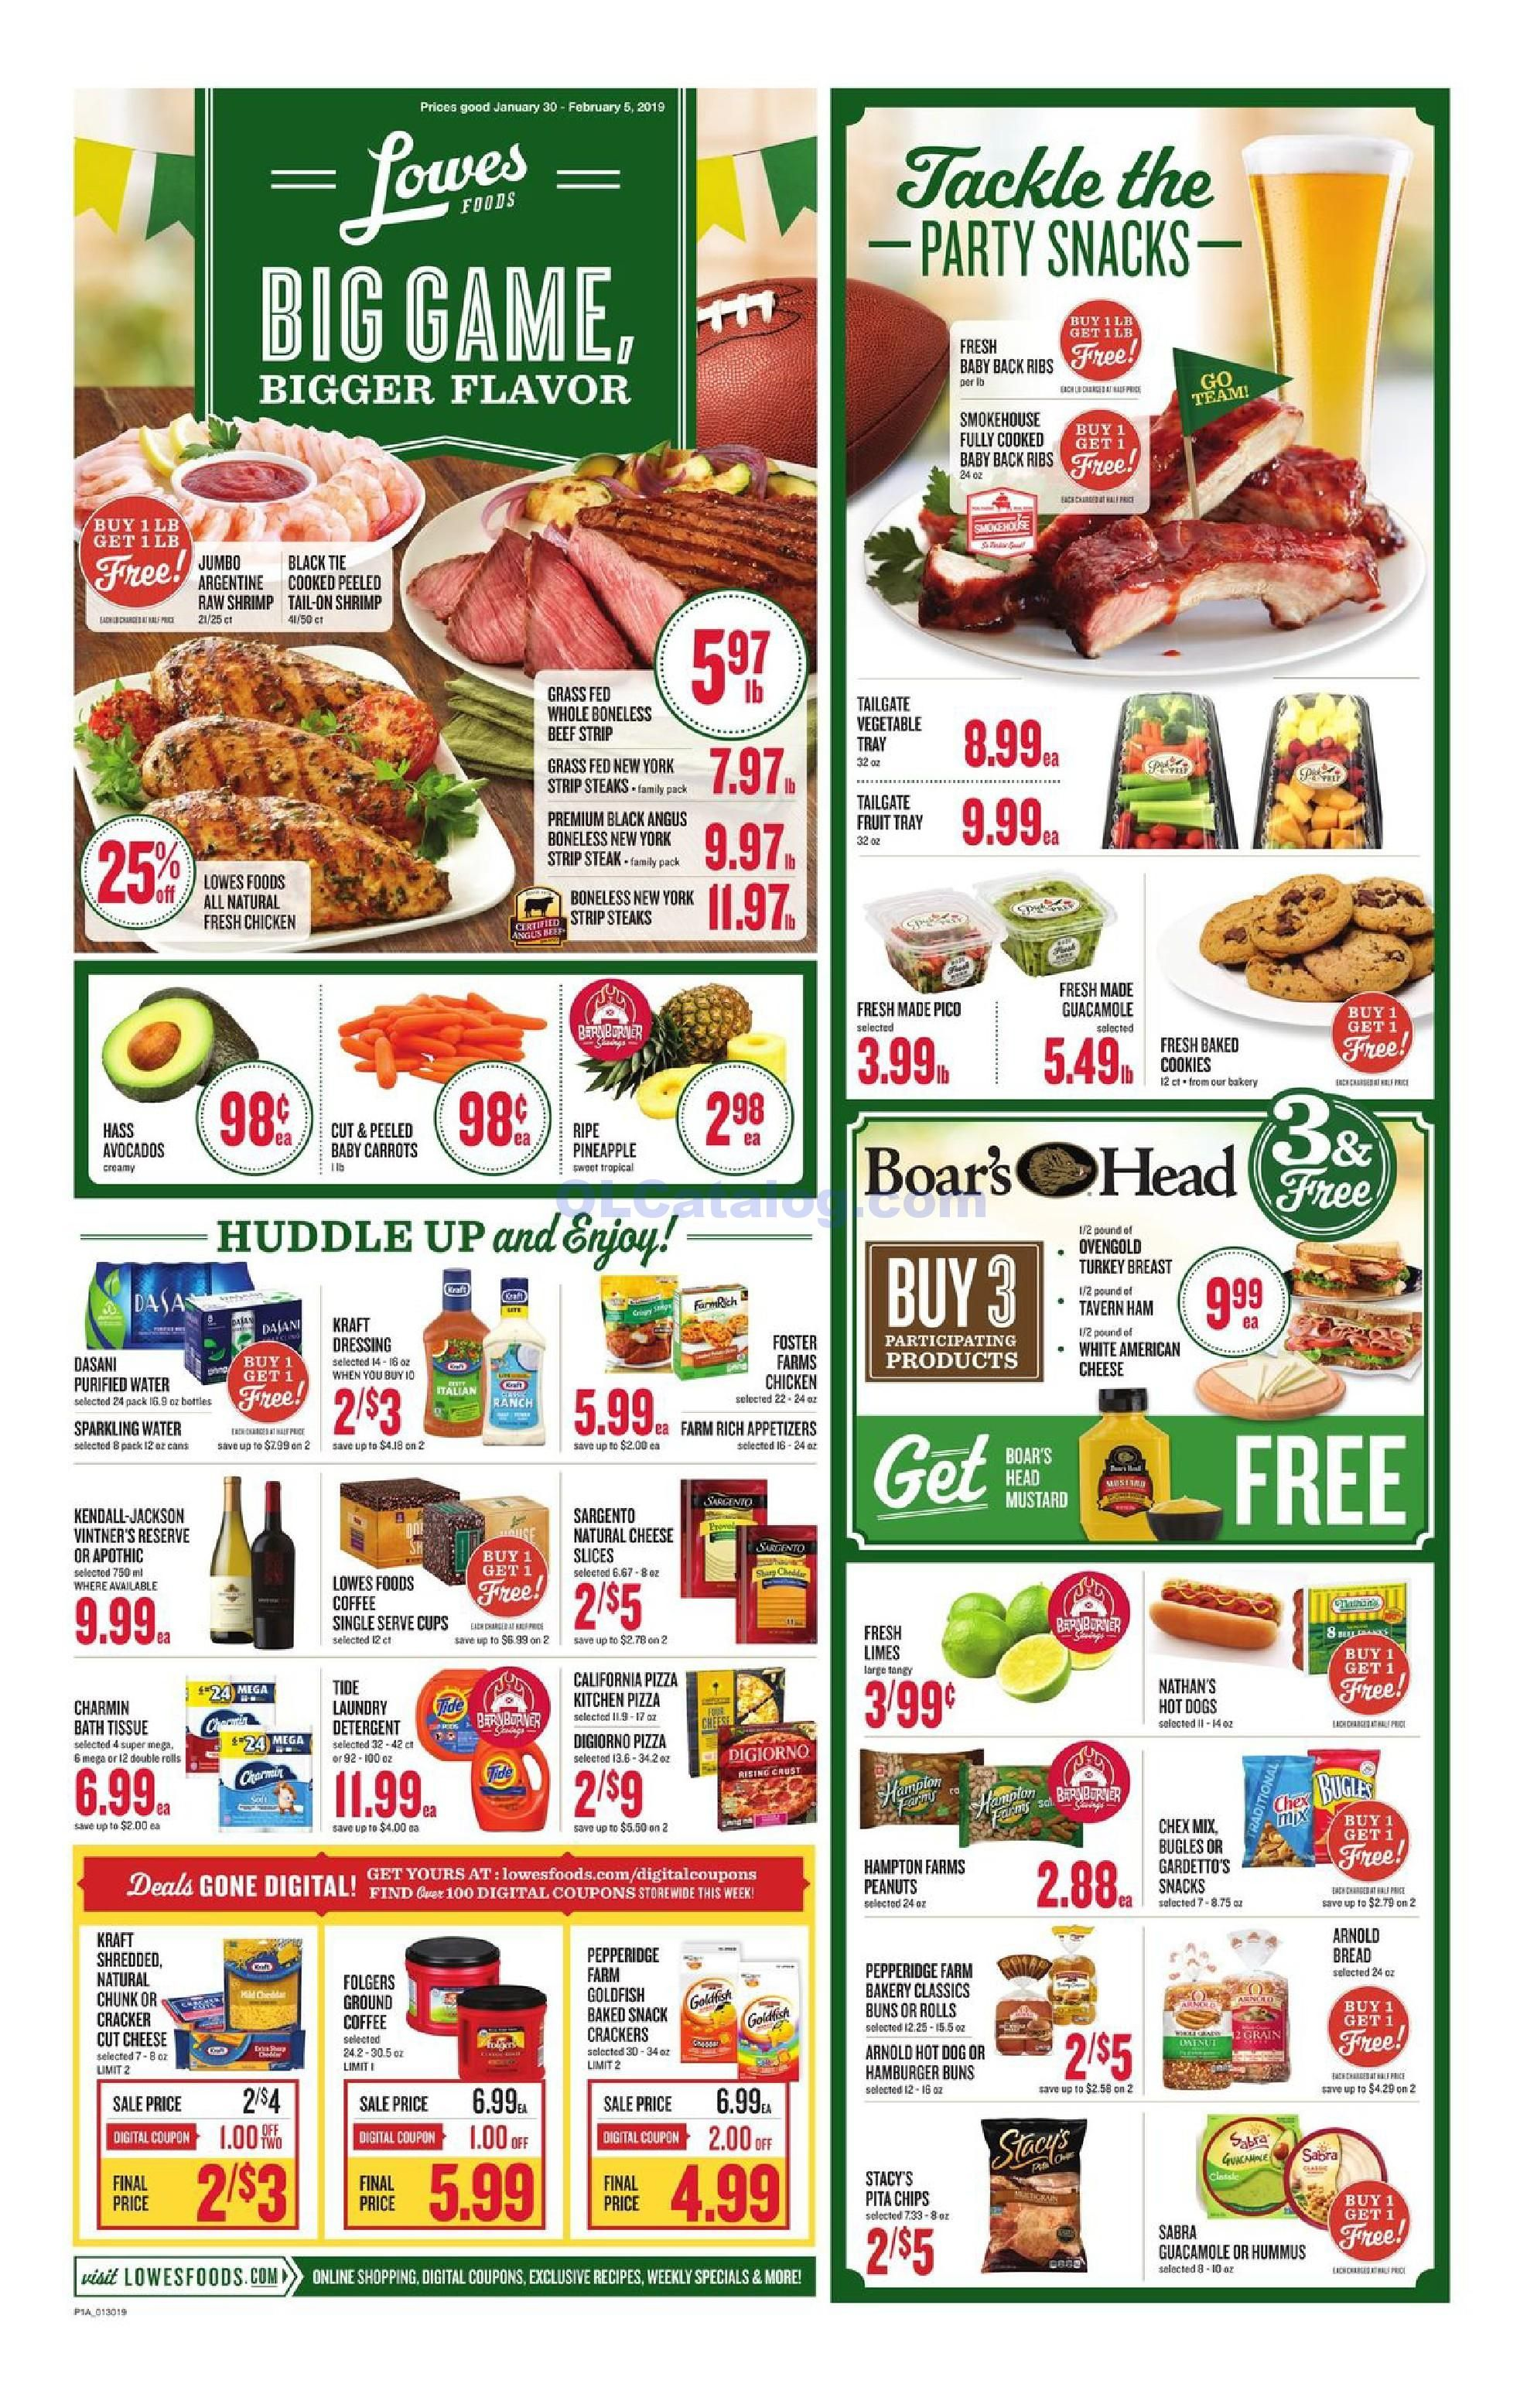 Lowes Foods Christmas Dinners 2020 Lowes foods Weekly Ad January 30 – February 5, 2019. View the